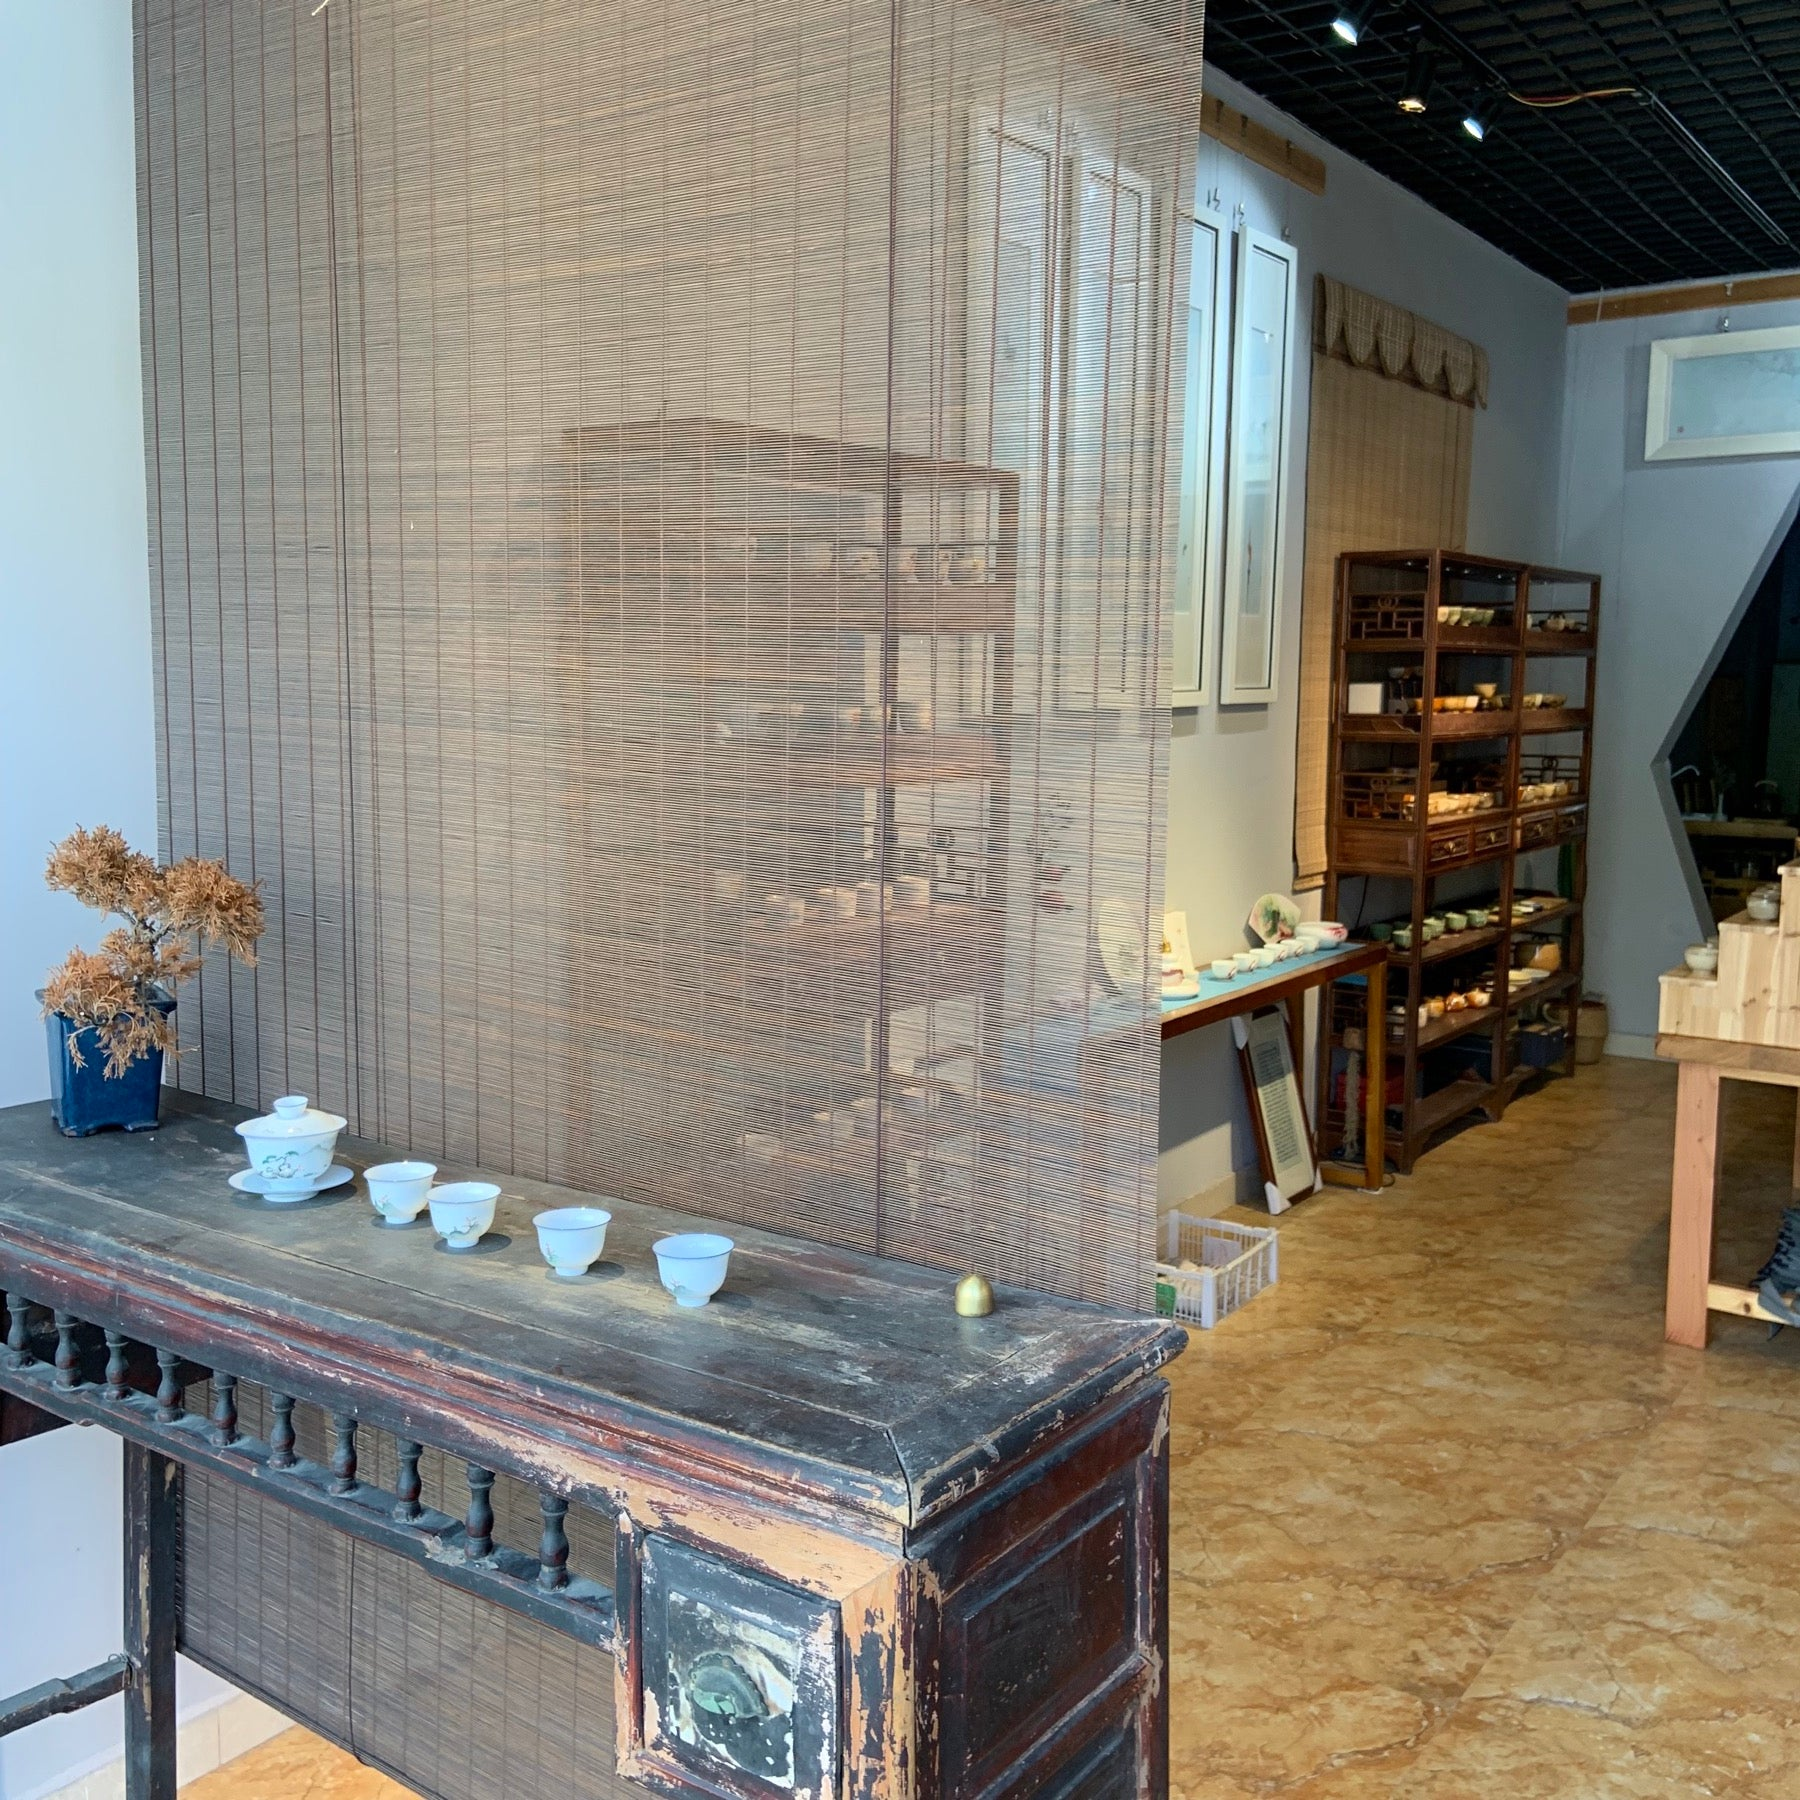 Teaware shop in Jingdezhen